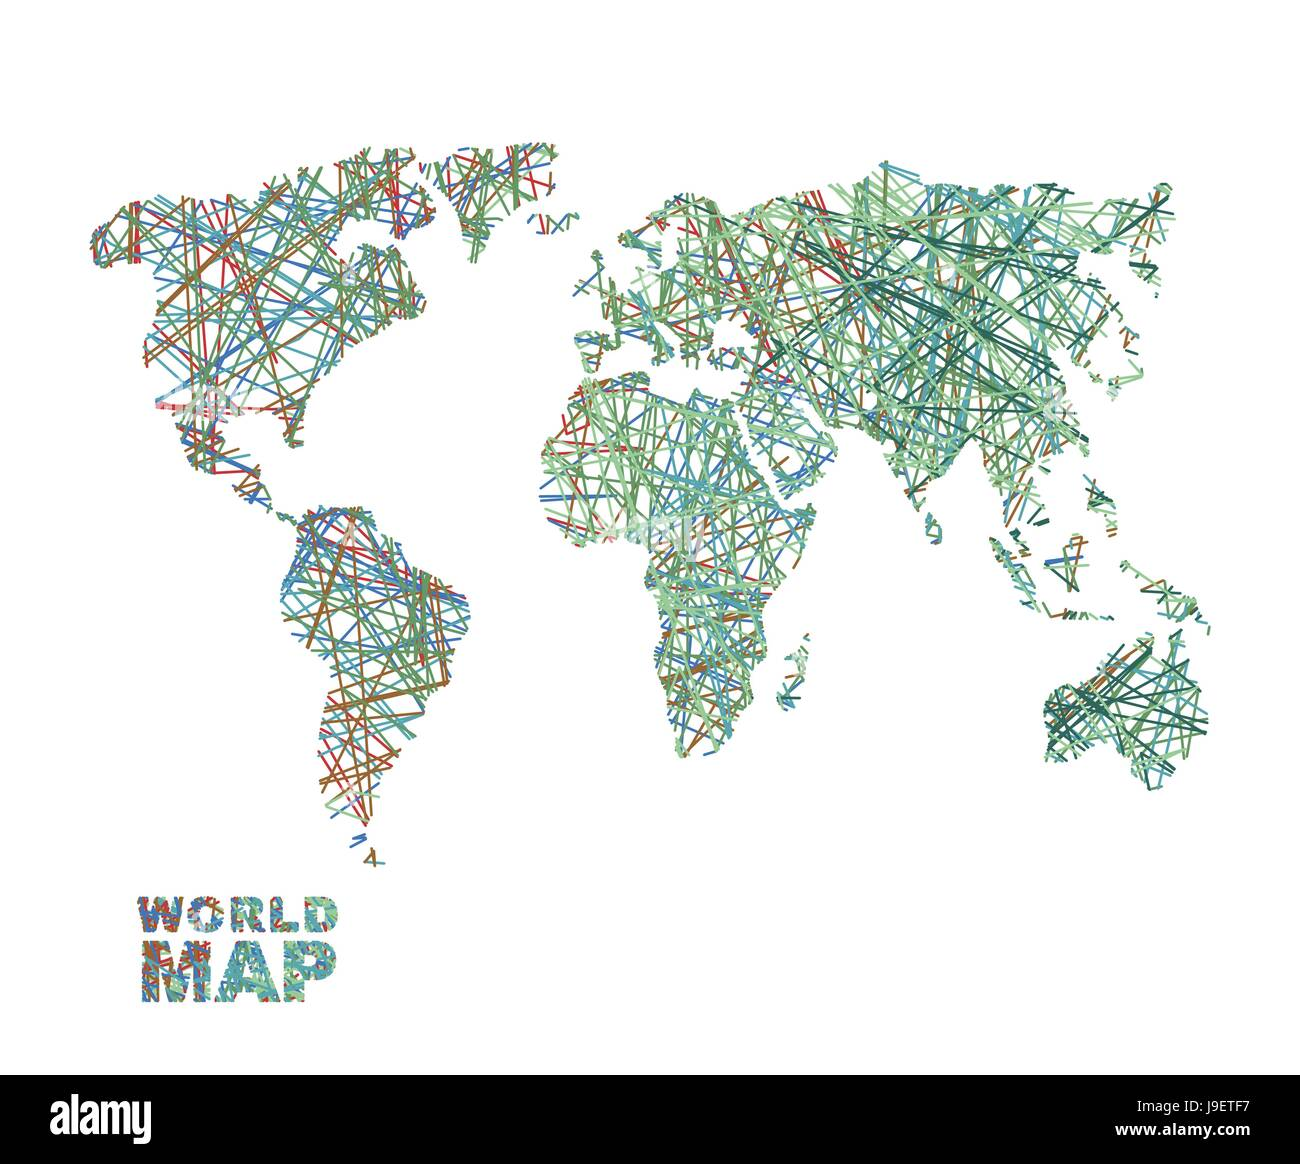 World map colored lines global internet network connects matter world map colored lines global internet network connects matter of planet earth business concept global connectivity and communication geography d gumiabroncs Choice Image